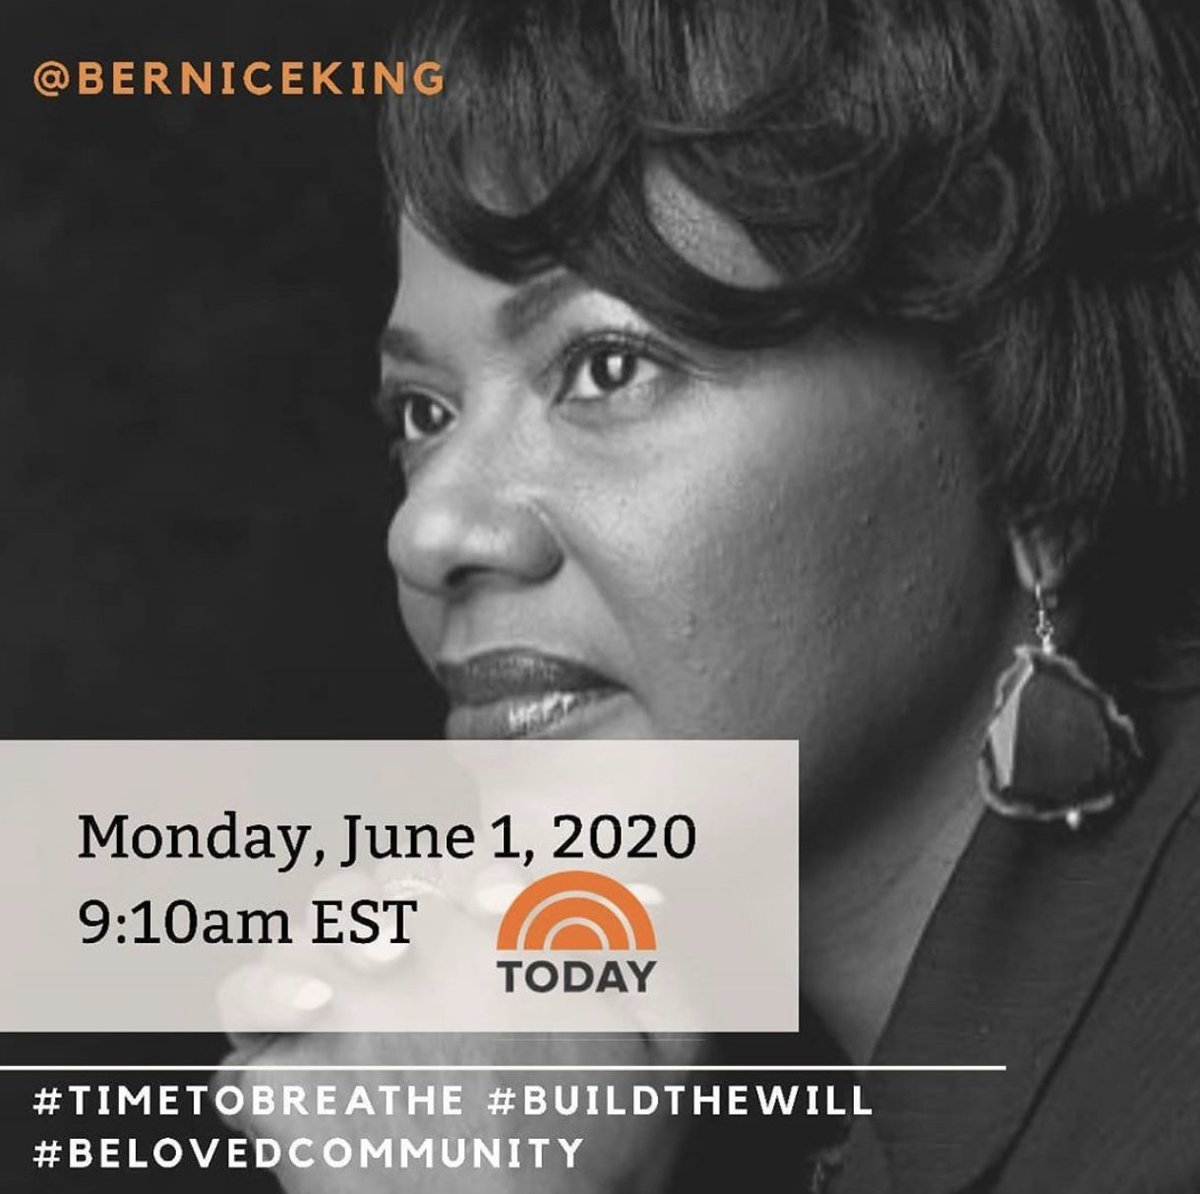 Tune in tomorrow to hear @BerniceKing